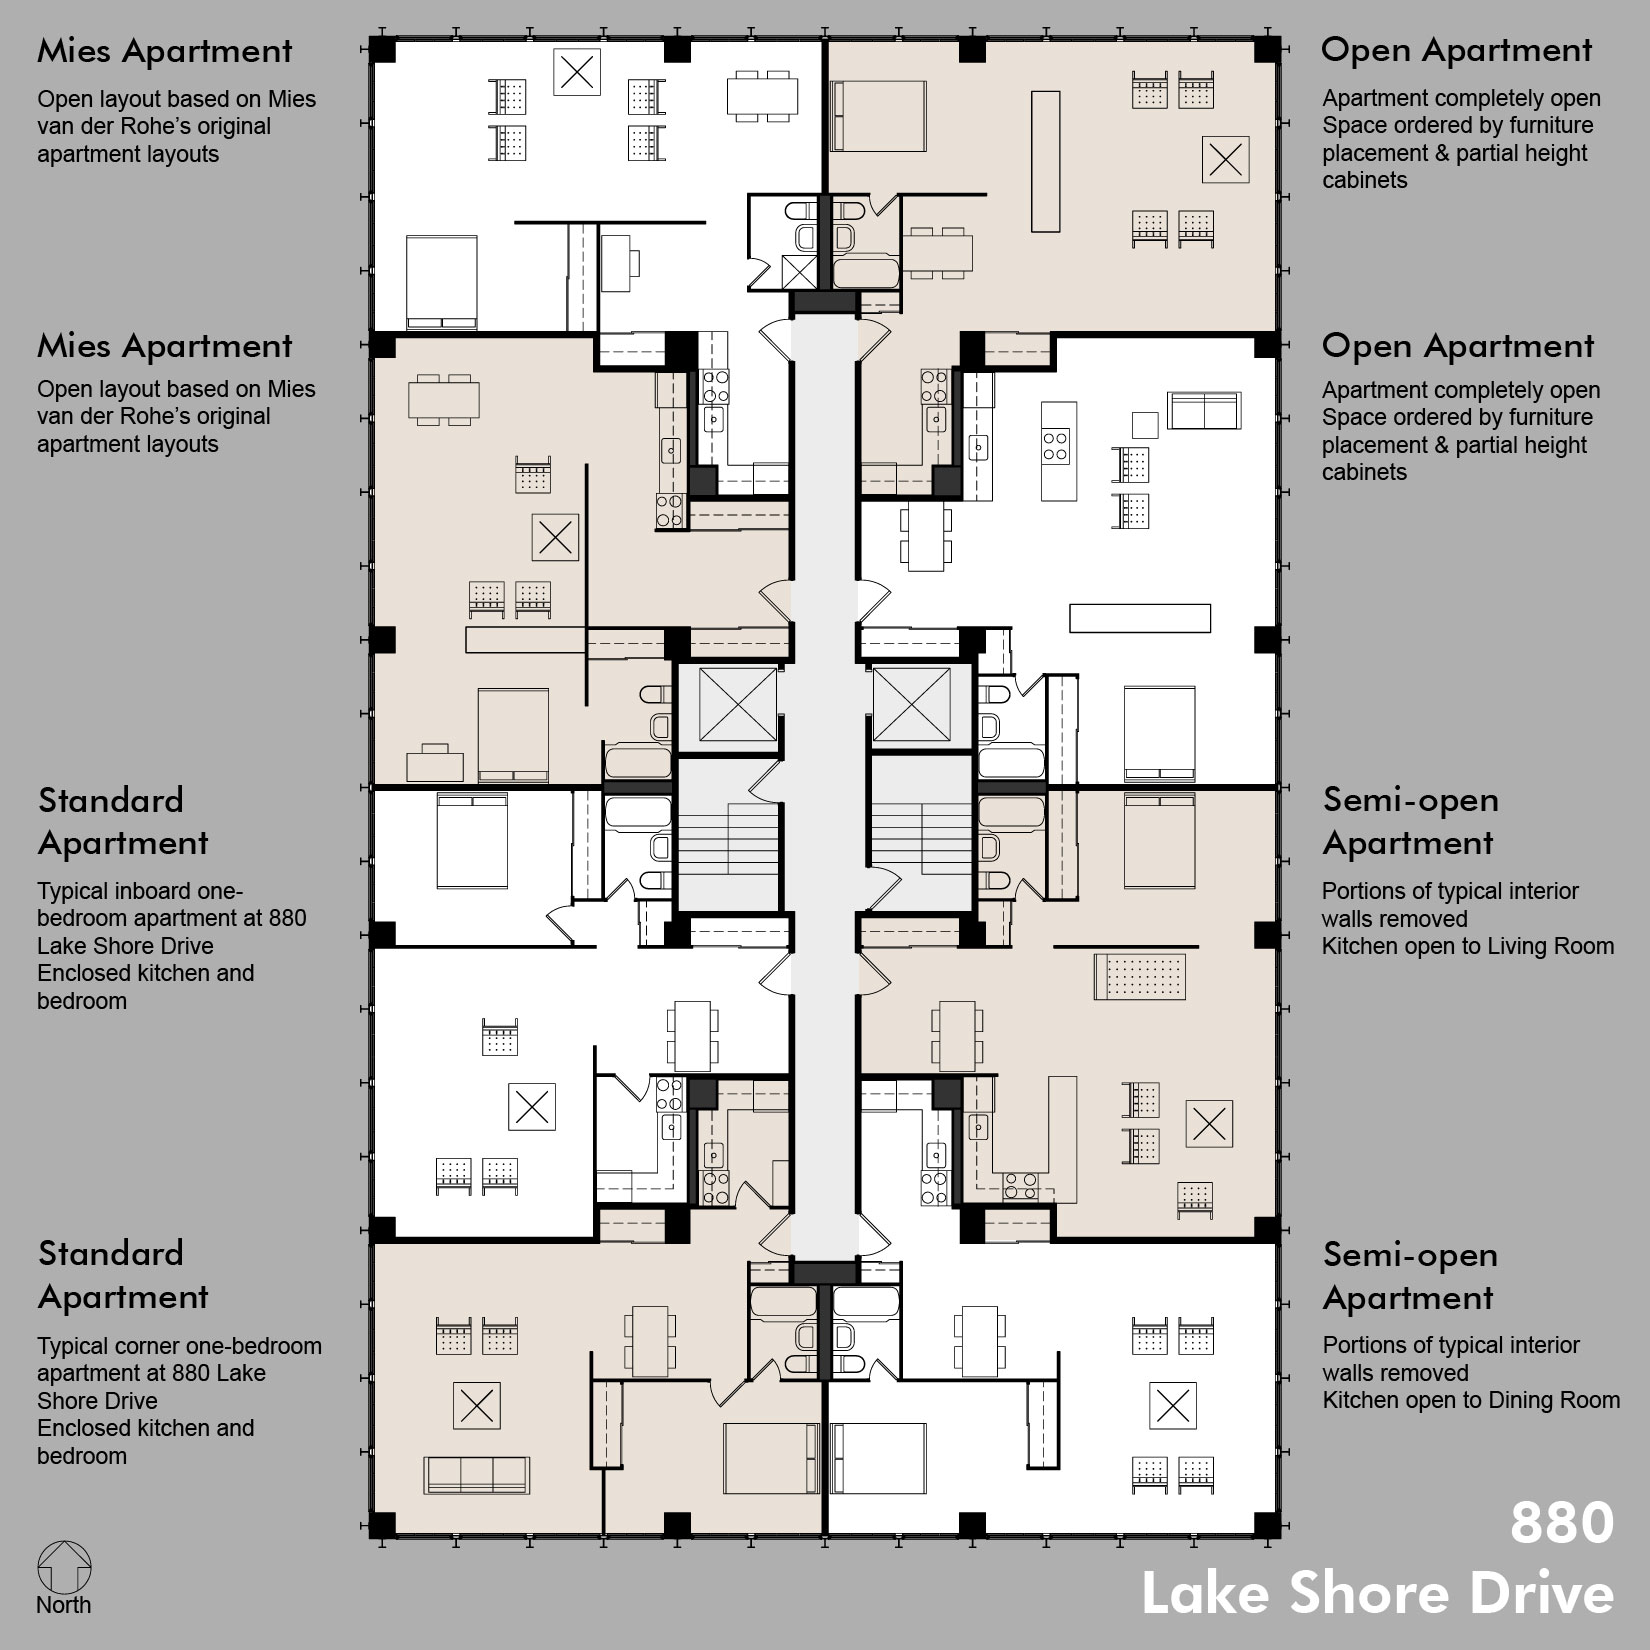 880 floor plans including standard apt Building plans